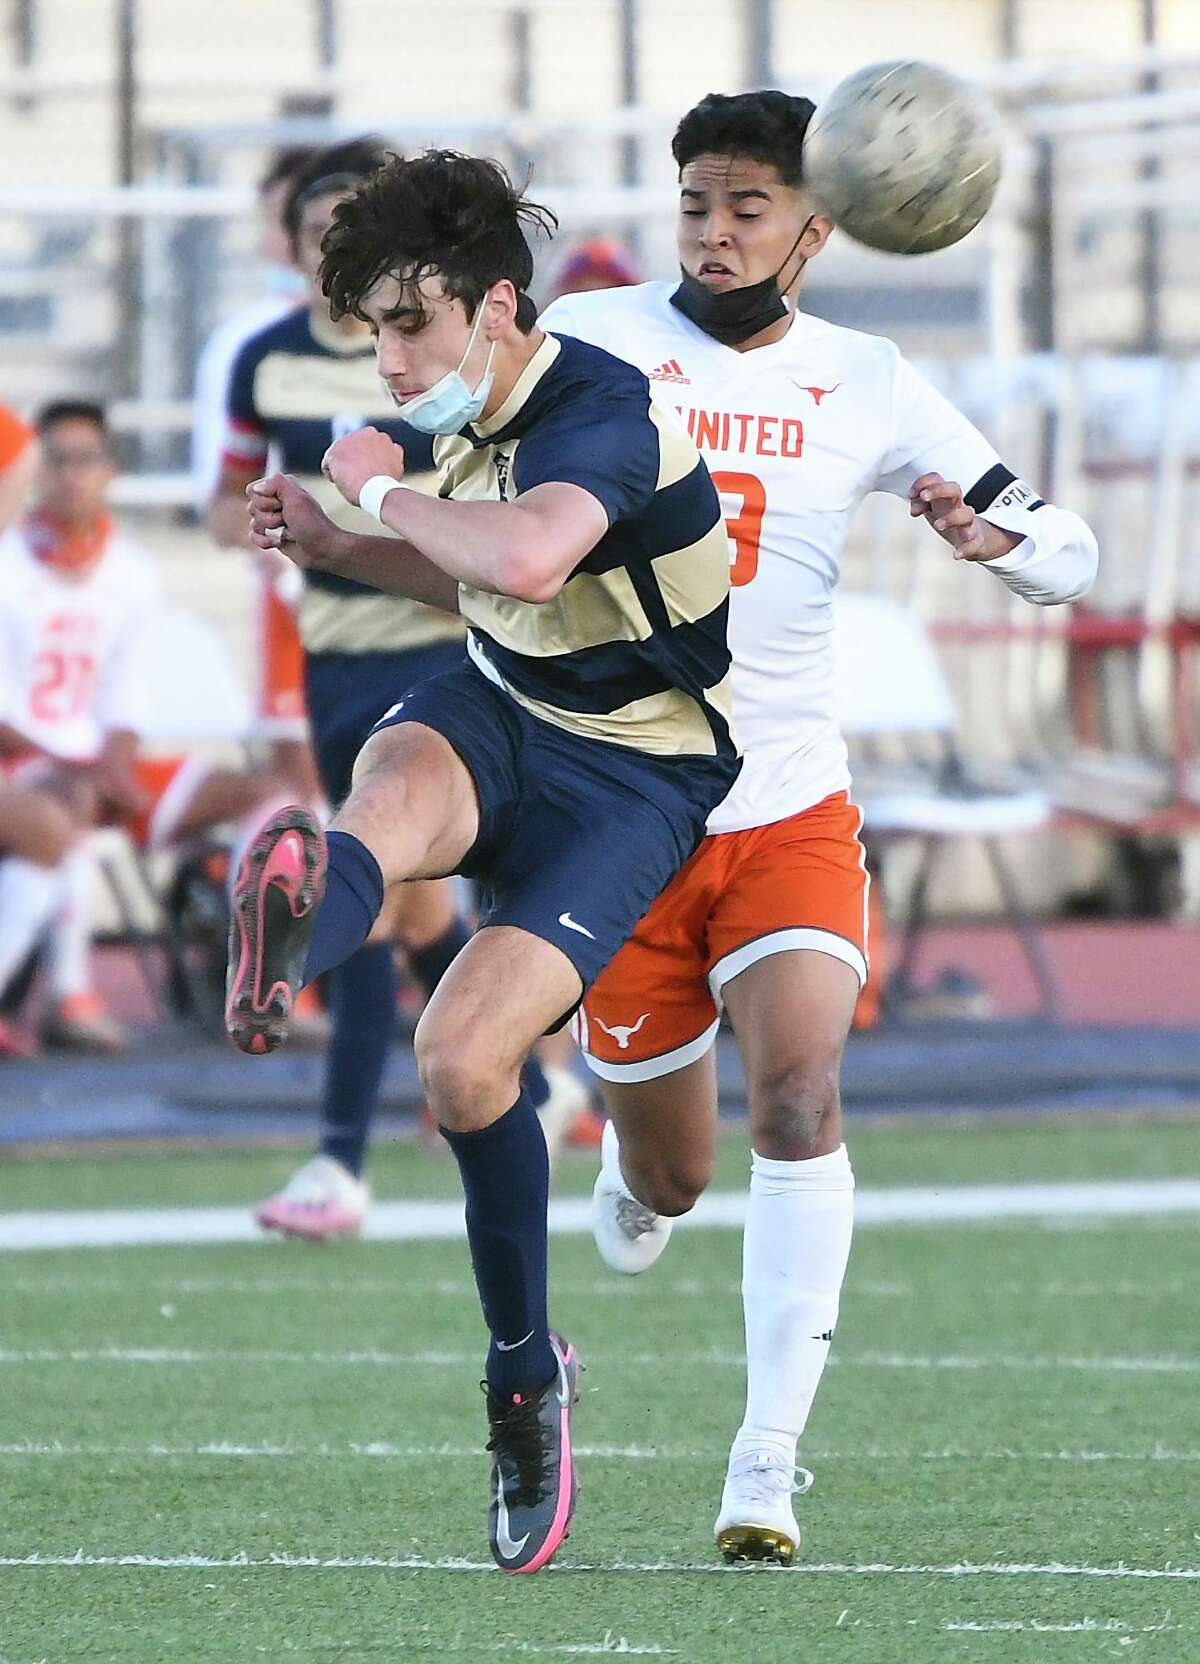 Roberto Ahumada and the Alexander Bulldogs will face Del Rio on Saturday for the opportunity to advance to the Sweet 16 of the state playoffs.